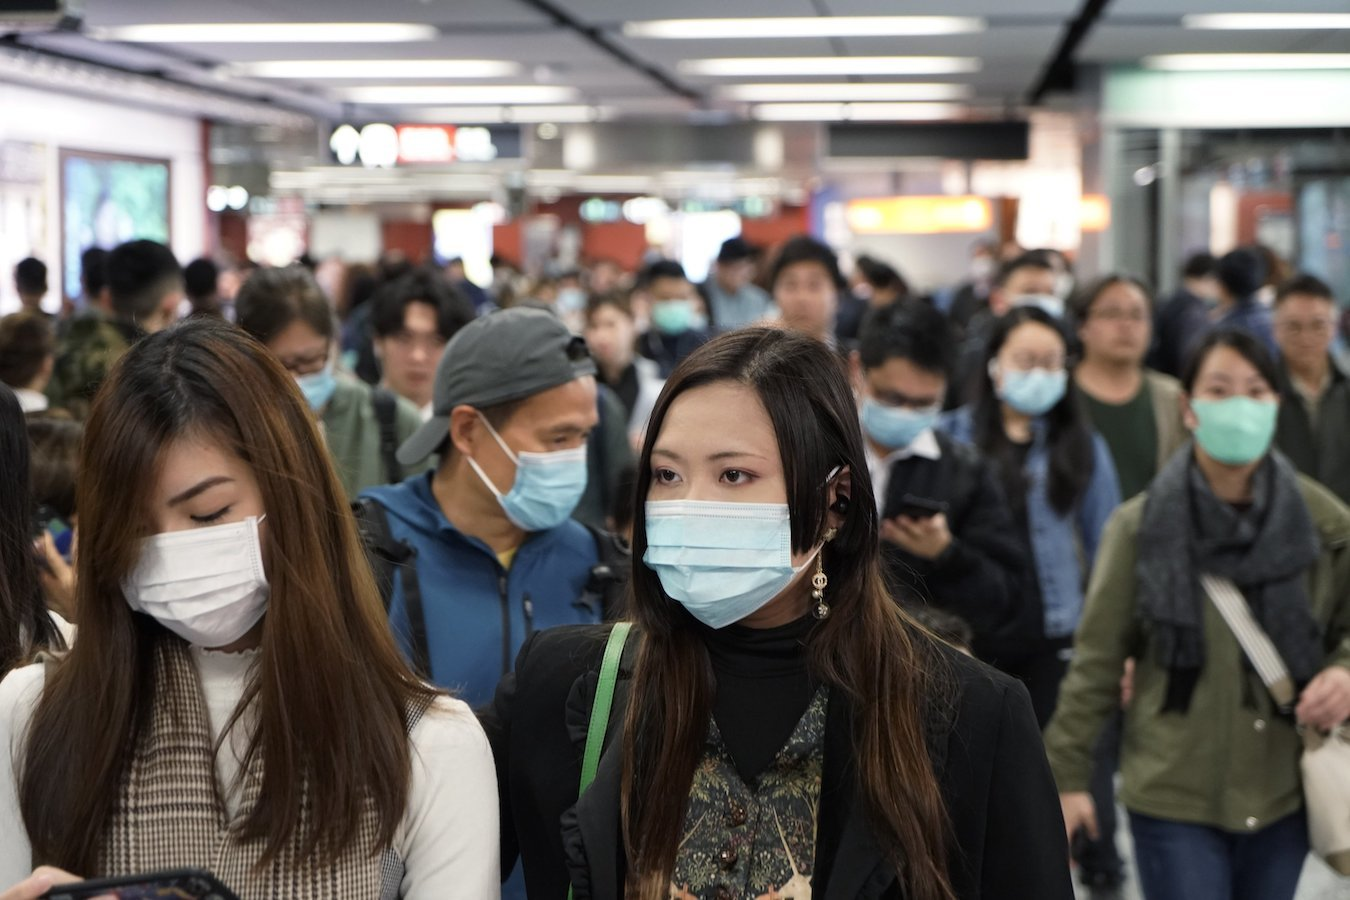 Hong Kong reports 13 new COVID-19 cases, 1,079 in total